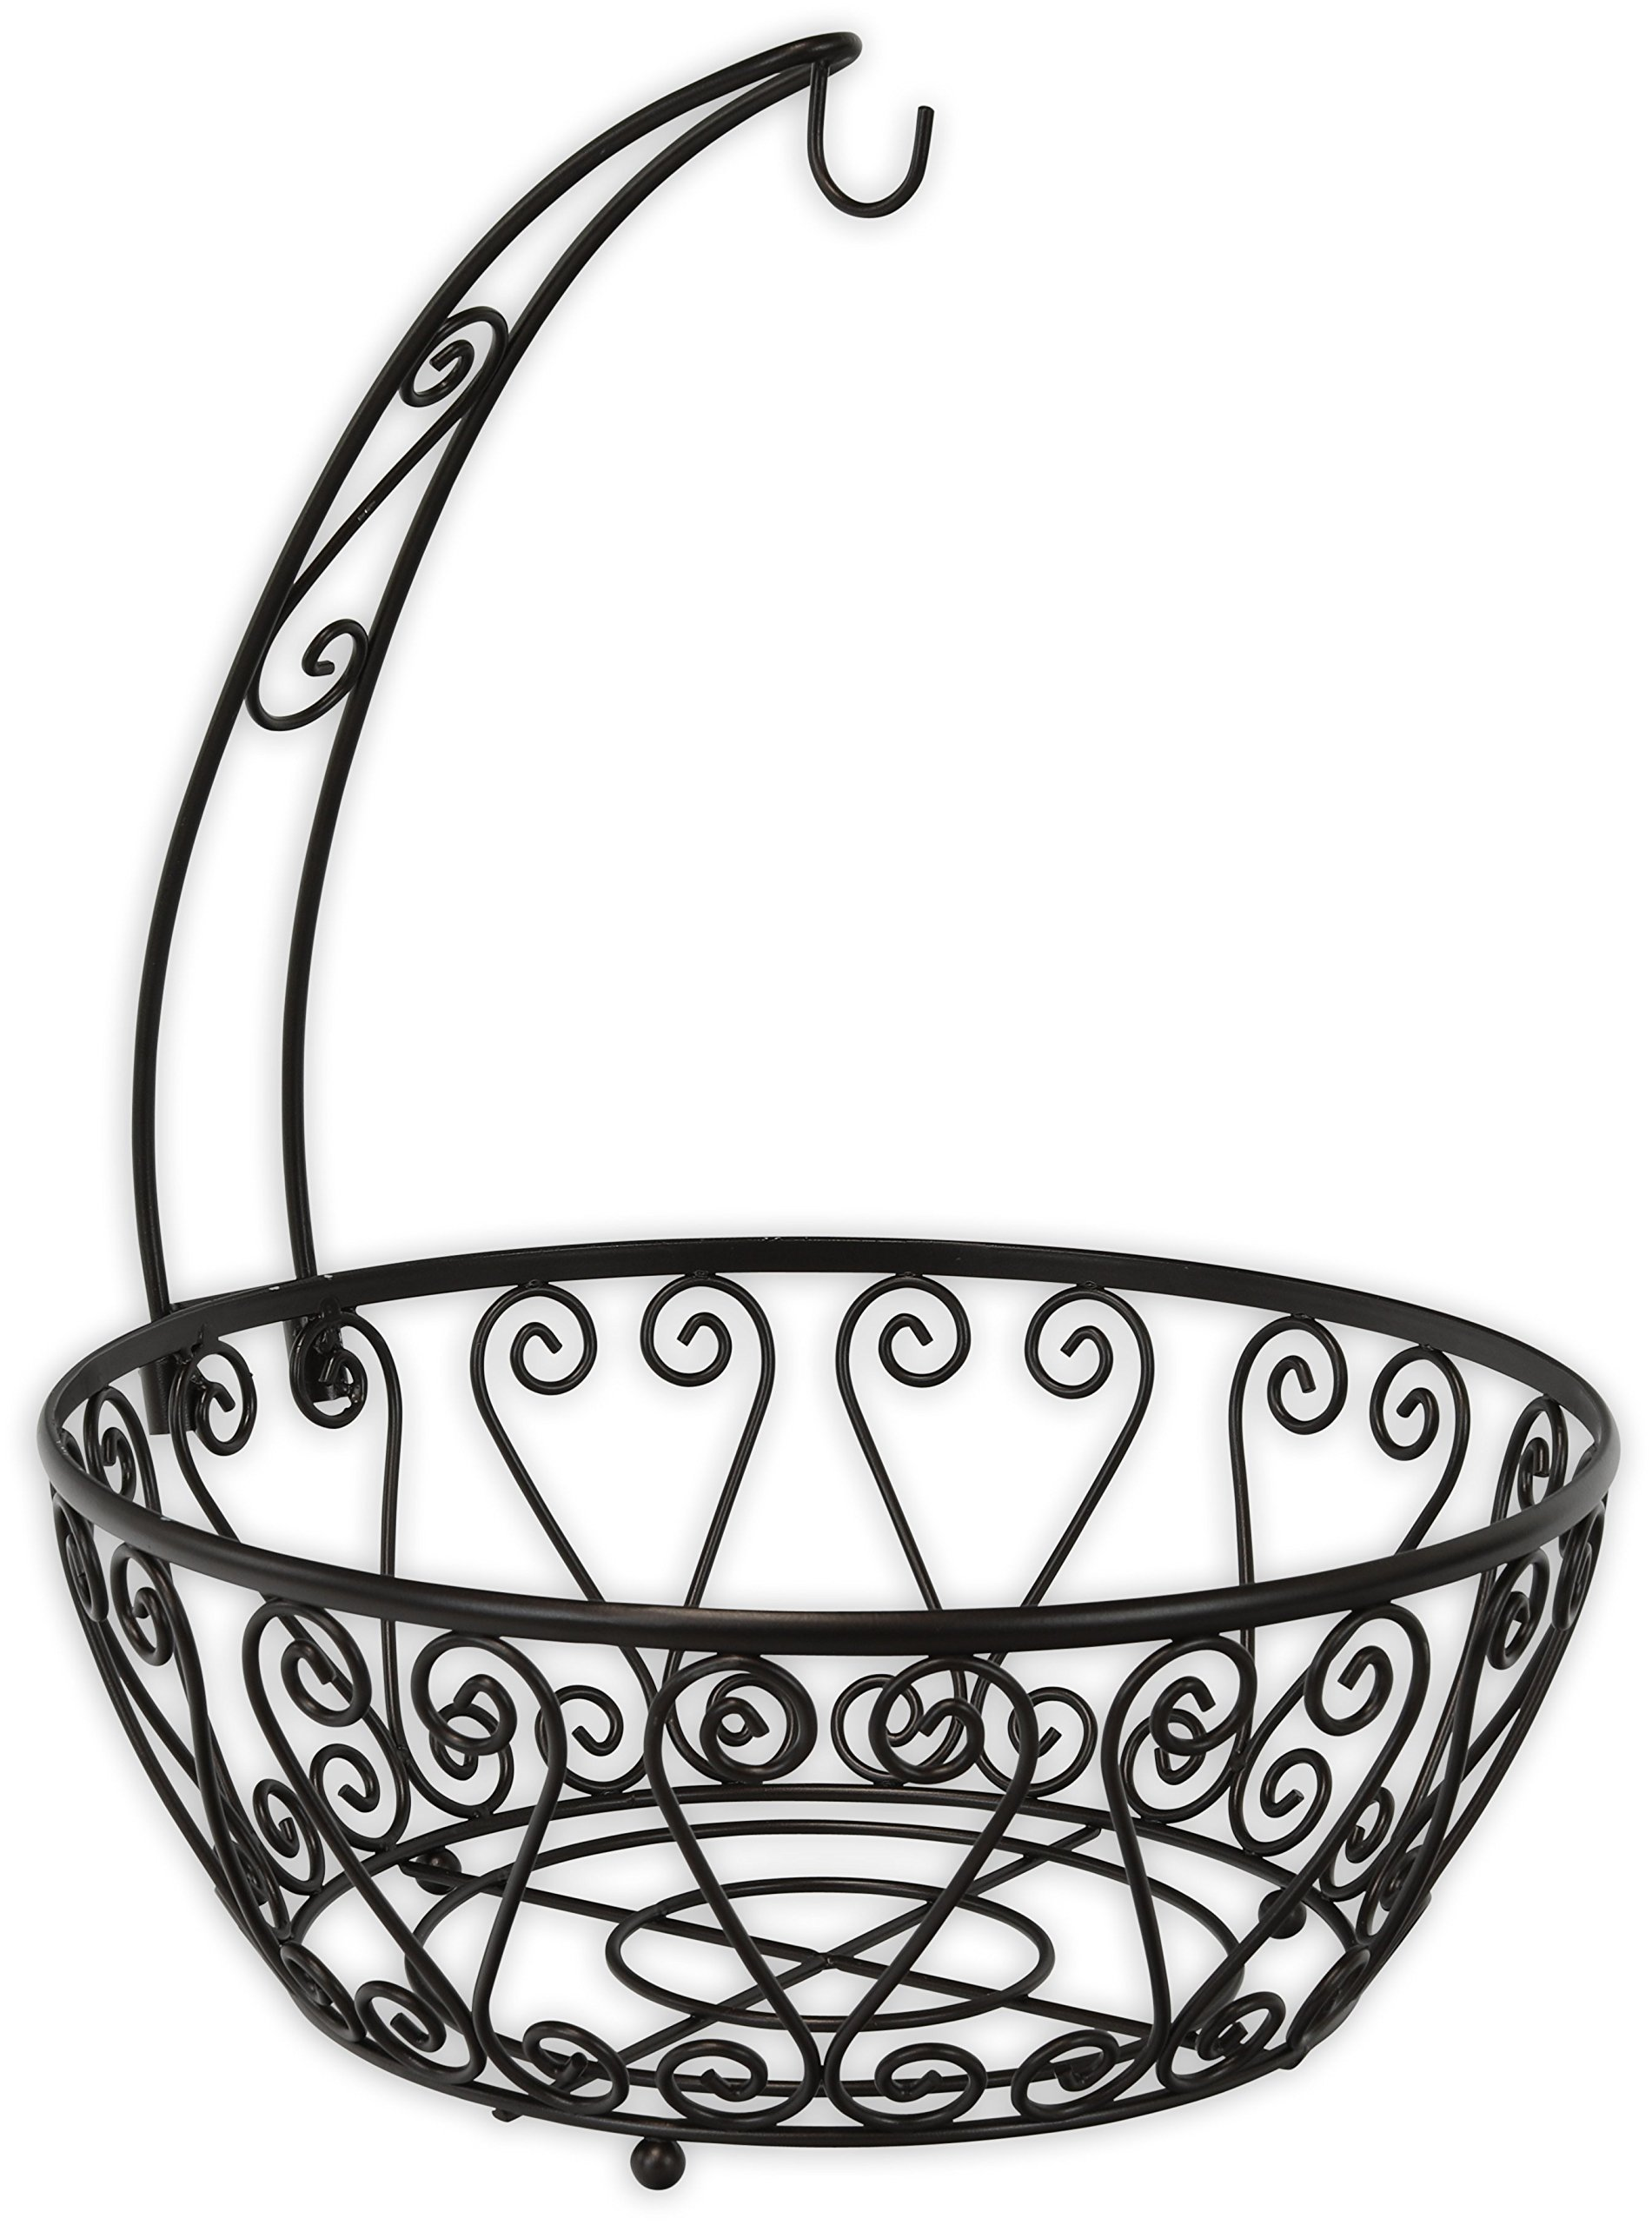 SimpleHouseware Fruit Basket Bowl with Banana Tree Hanger, Bronze by Simple Houseware (Image #2)